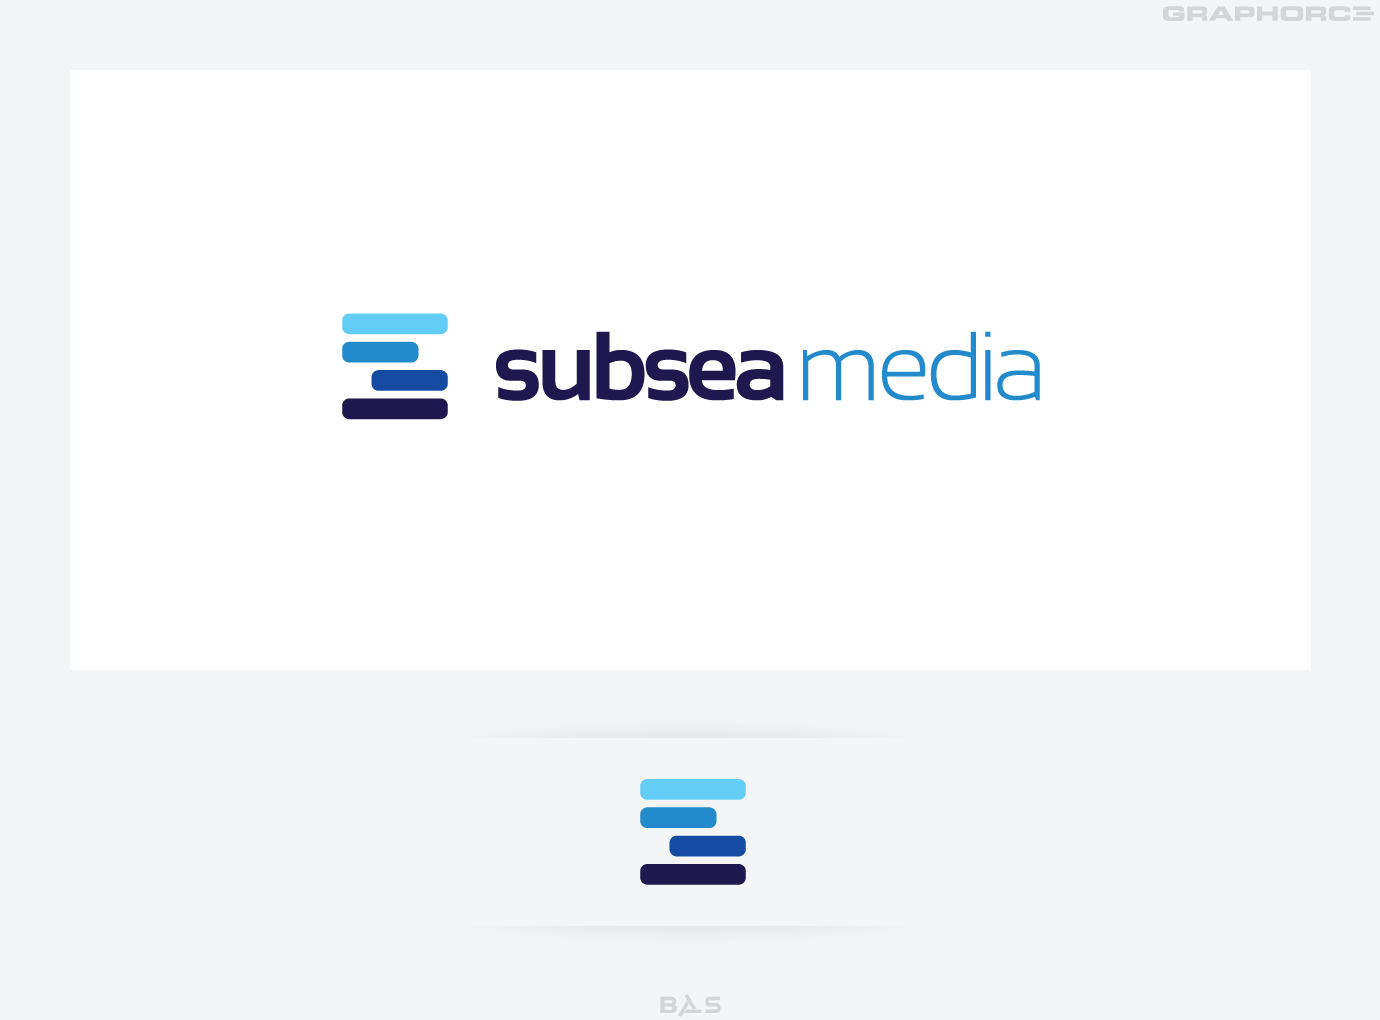 Help Subsea Media with a new logo